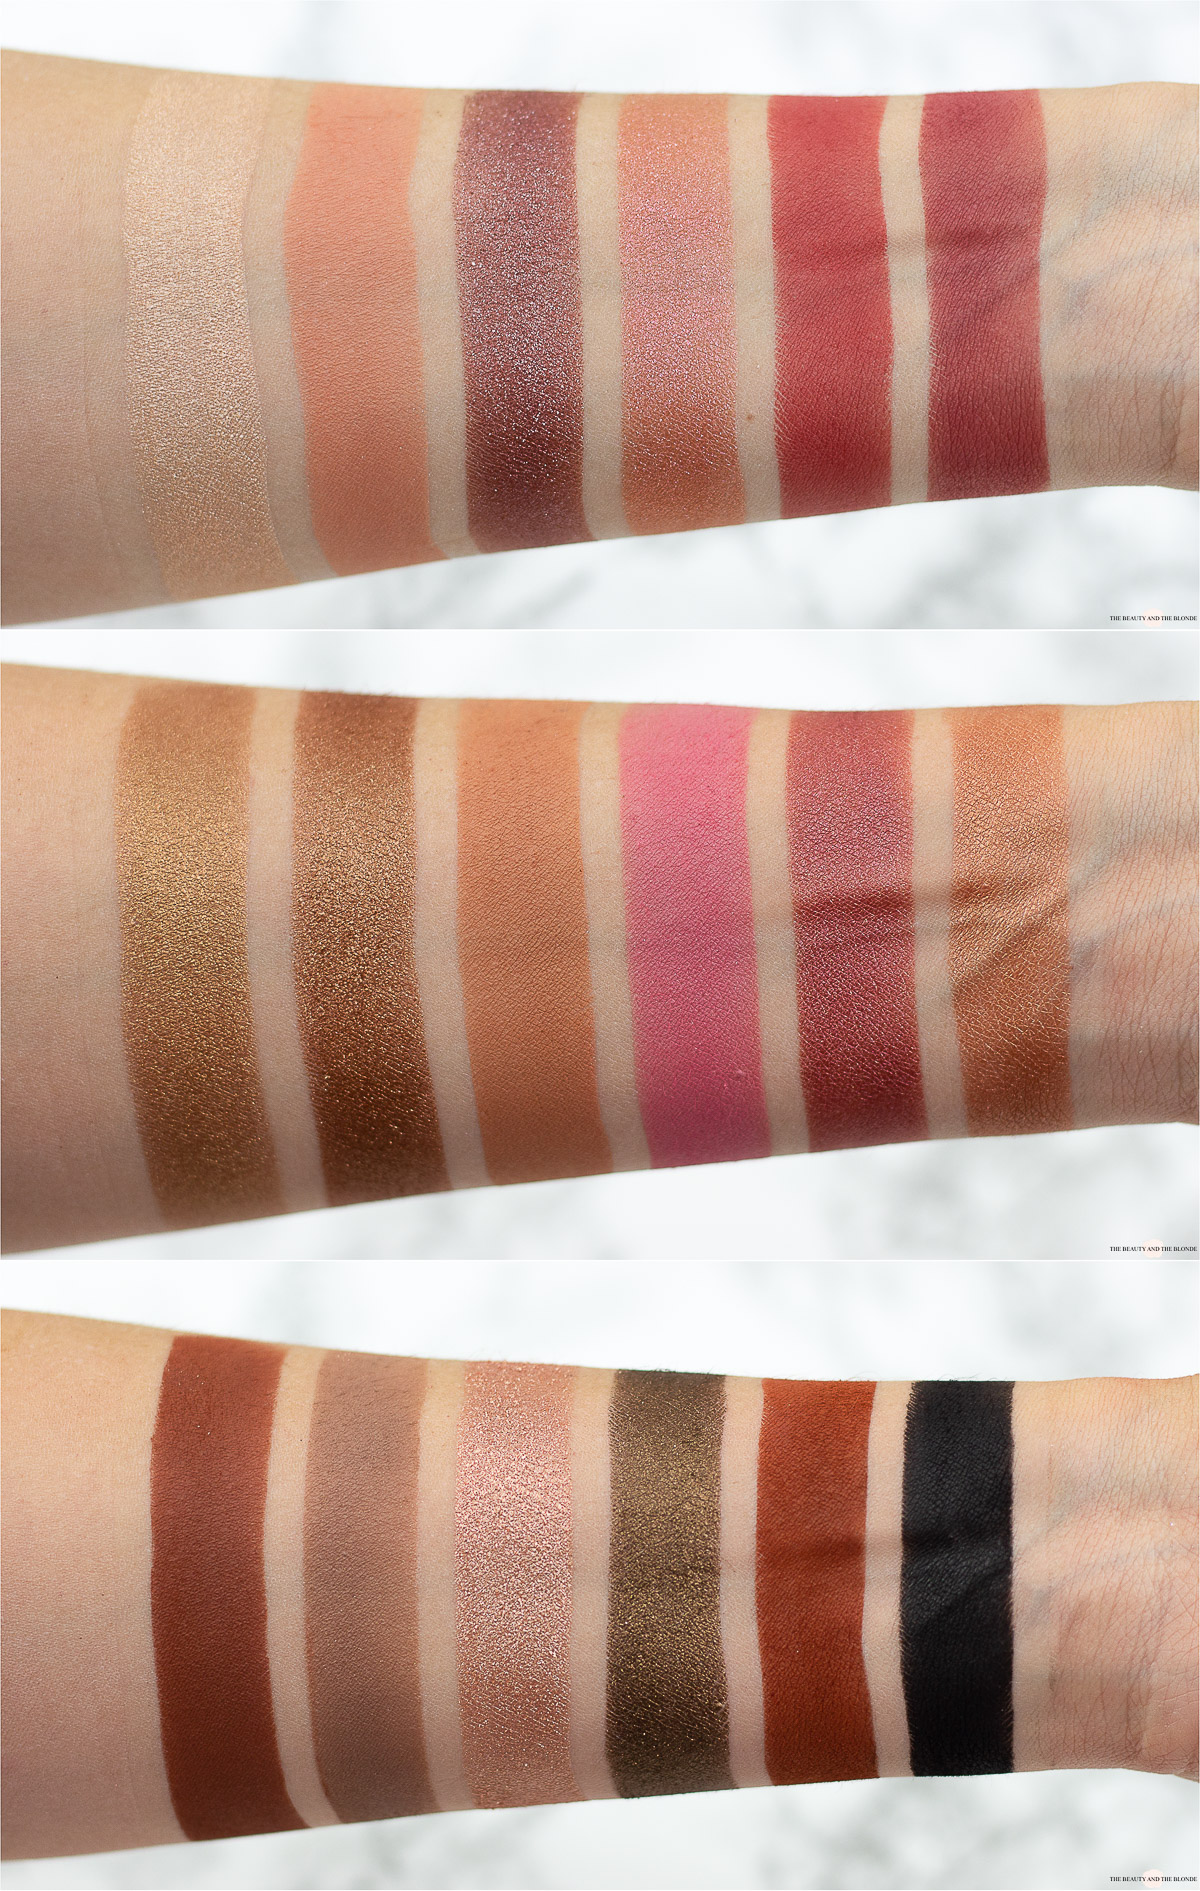 Catrice Orchid Dusk Palette Swatches